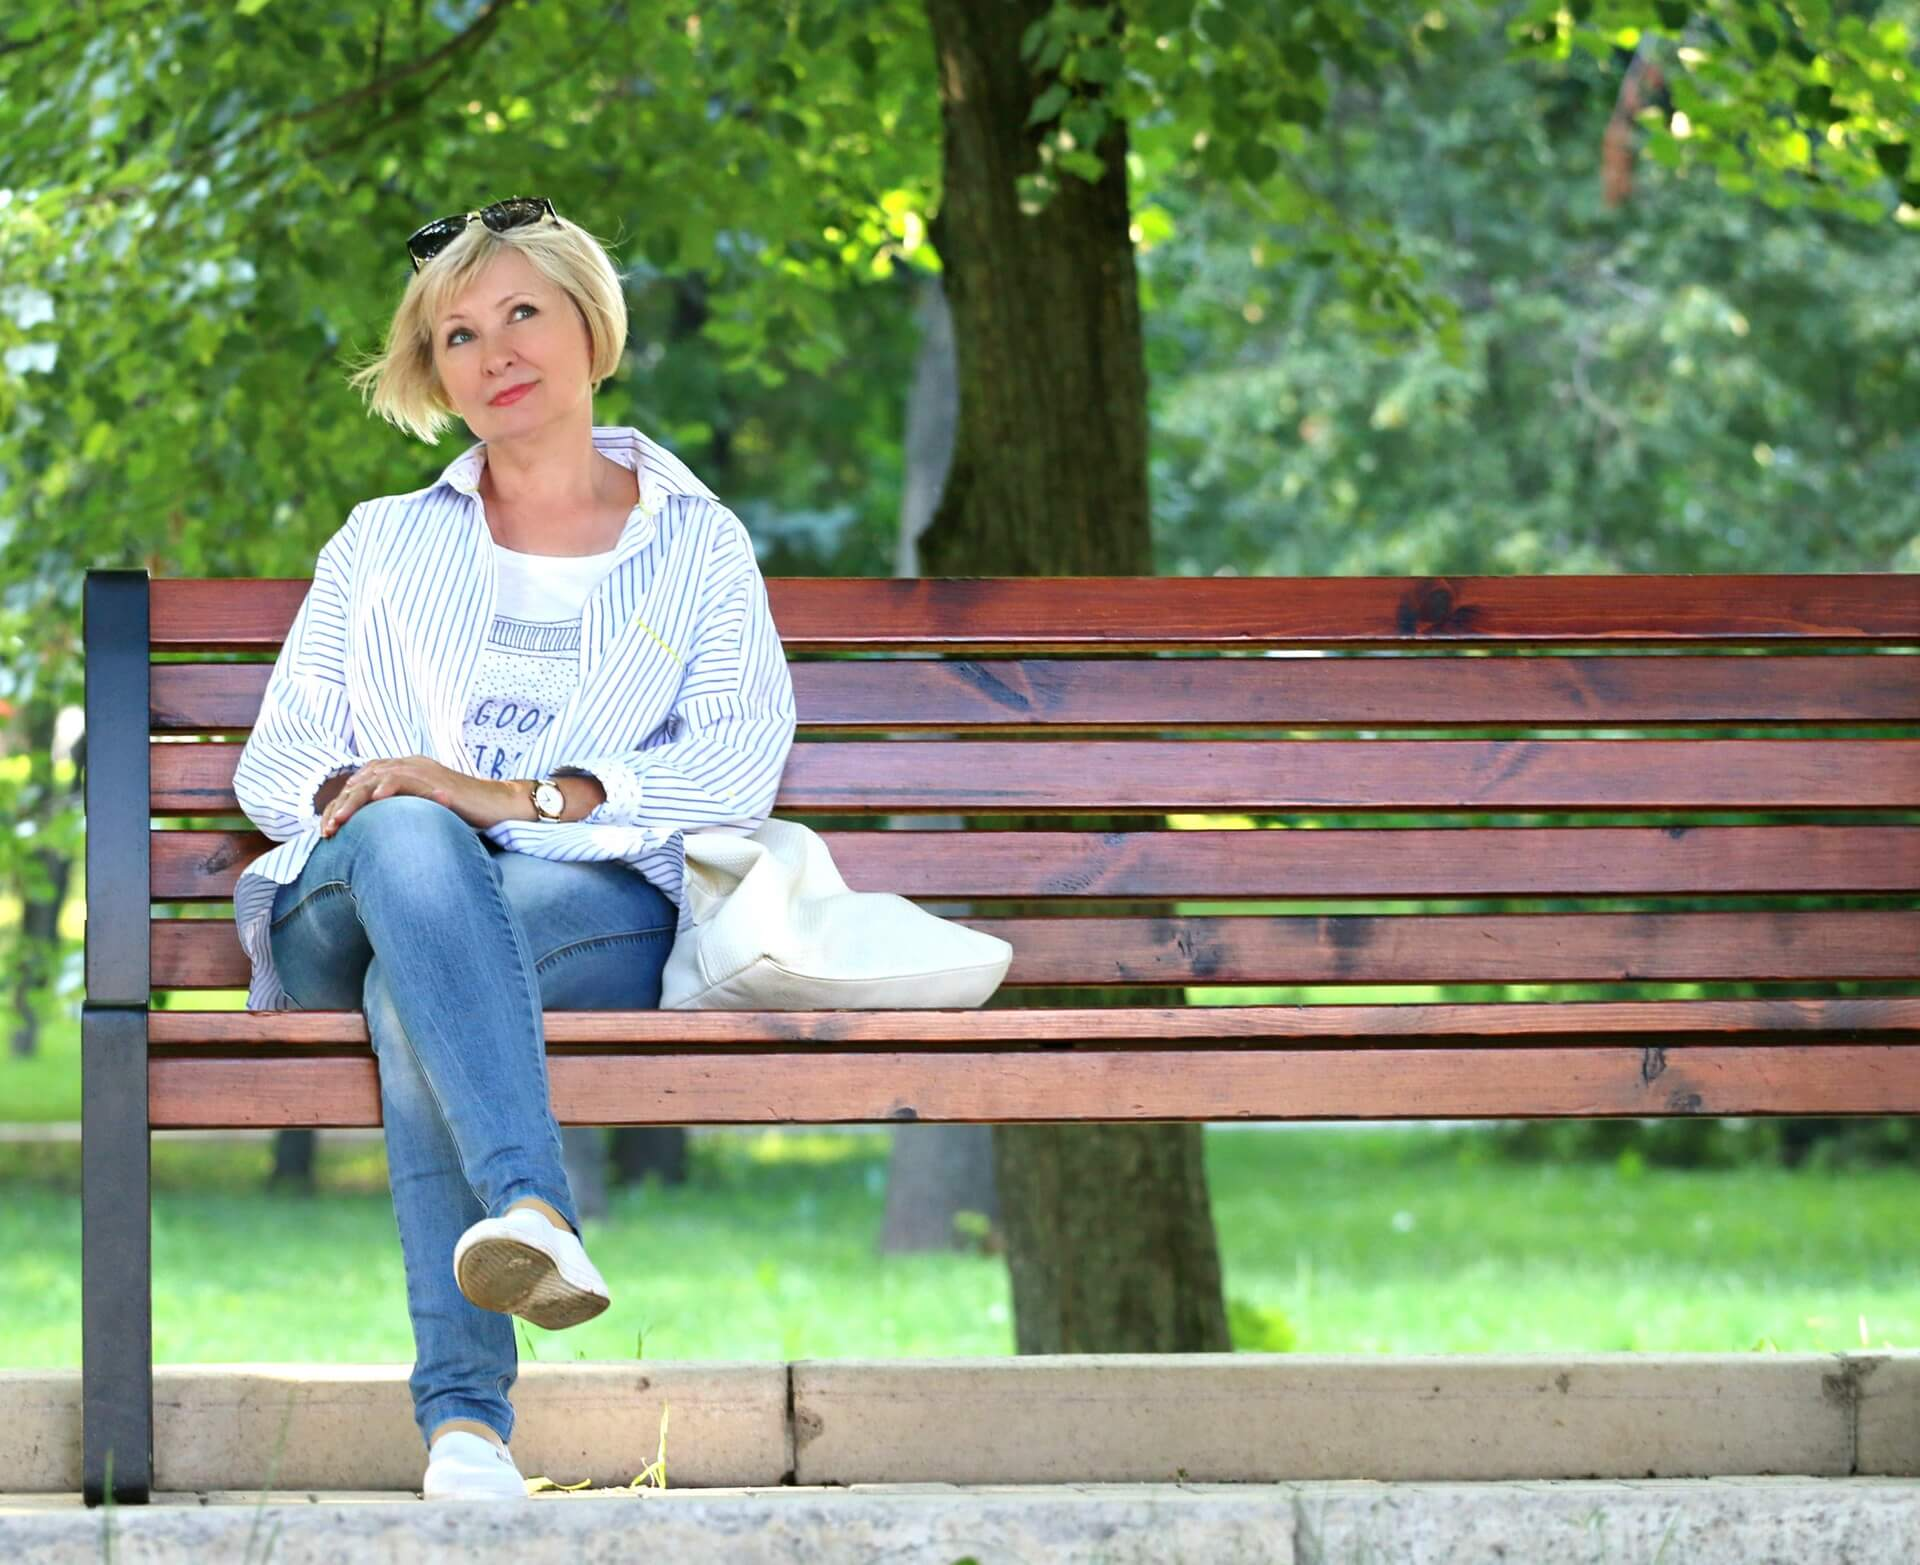 woman thinking on park bench